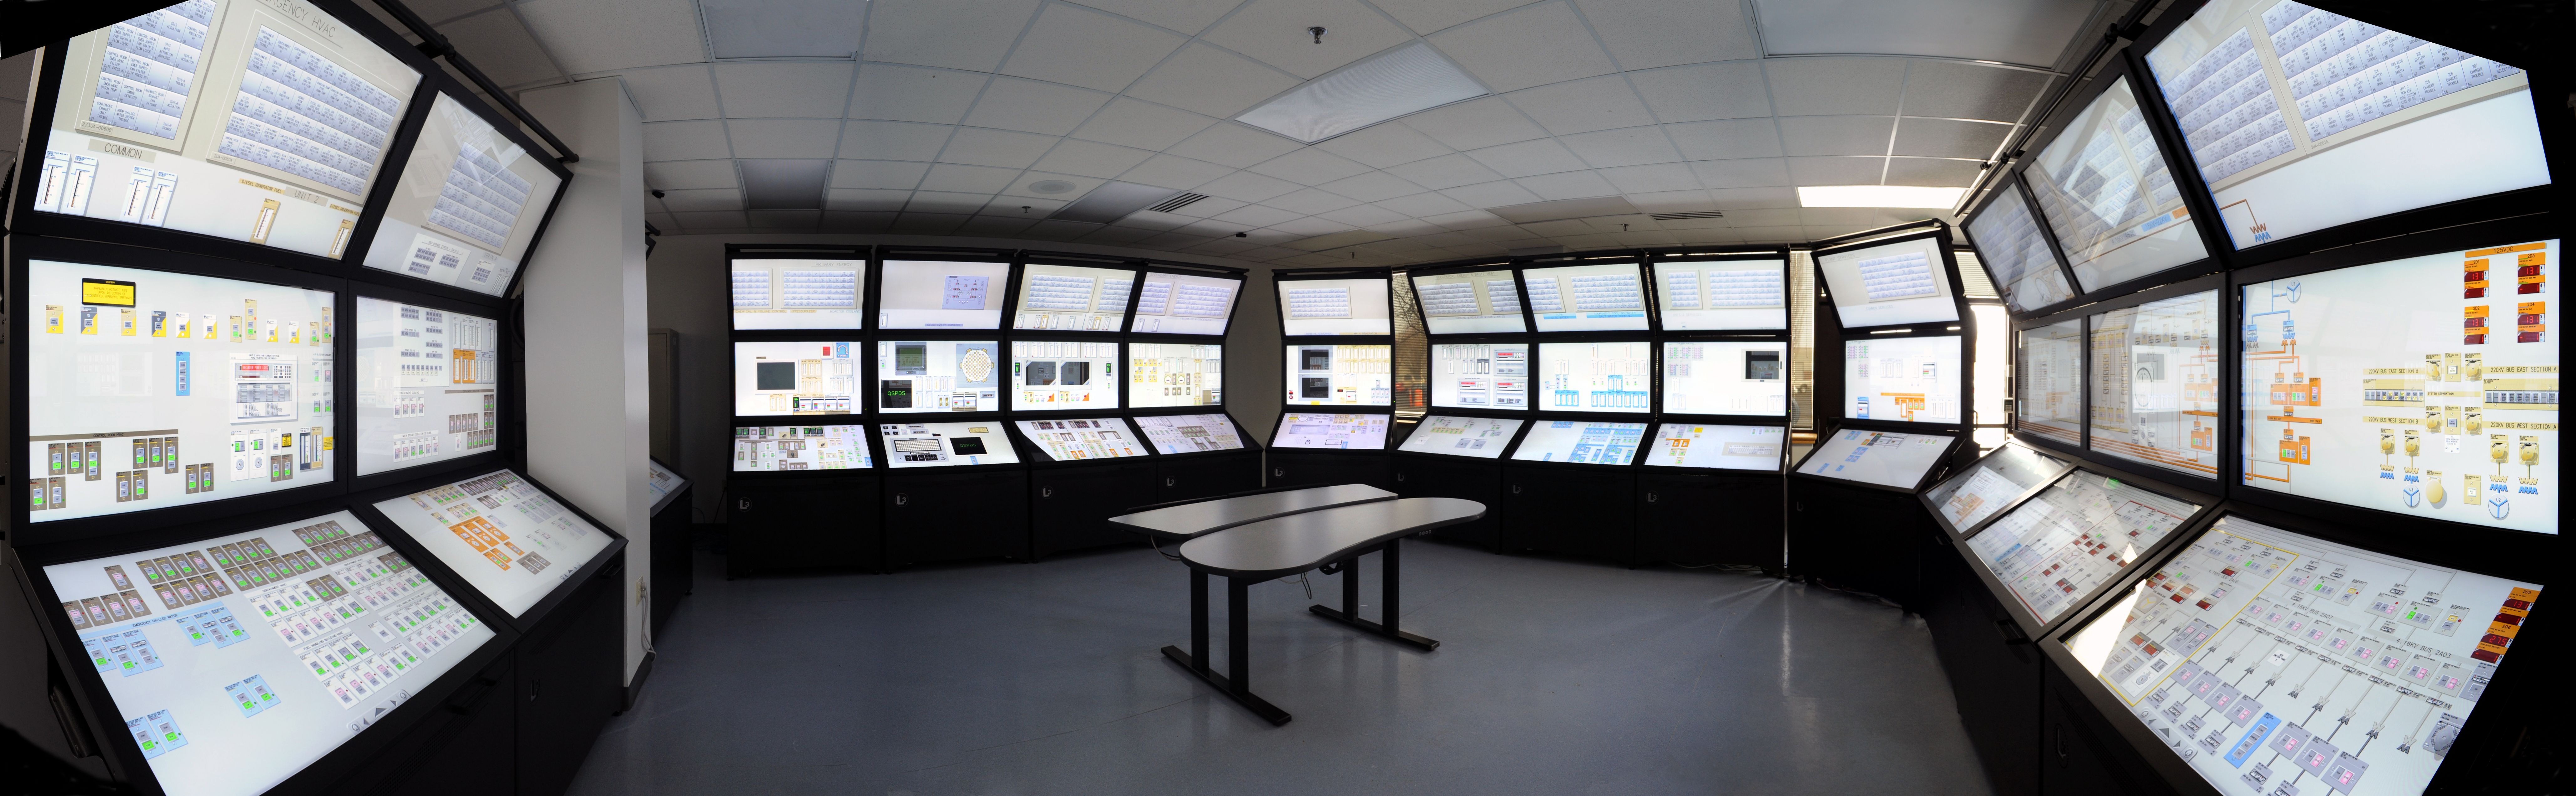 small resolution of modernizing nuclear power plants to help extend their operating lifetimes is no small task but the endeavor offers an opportunity to improve control room